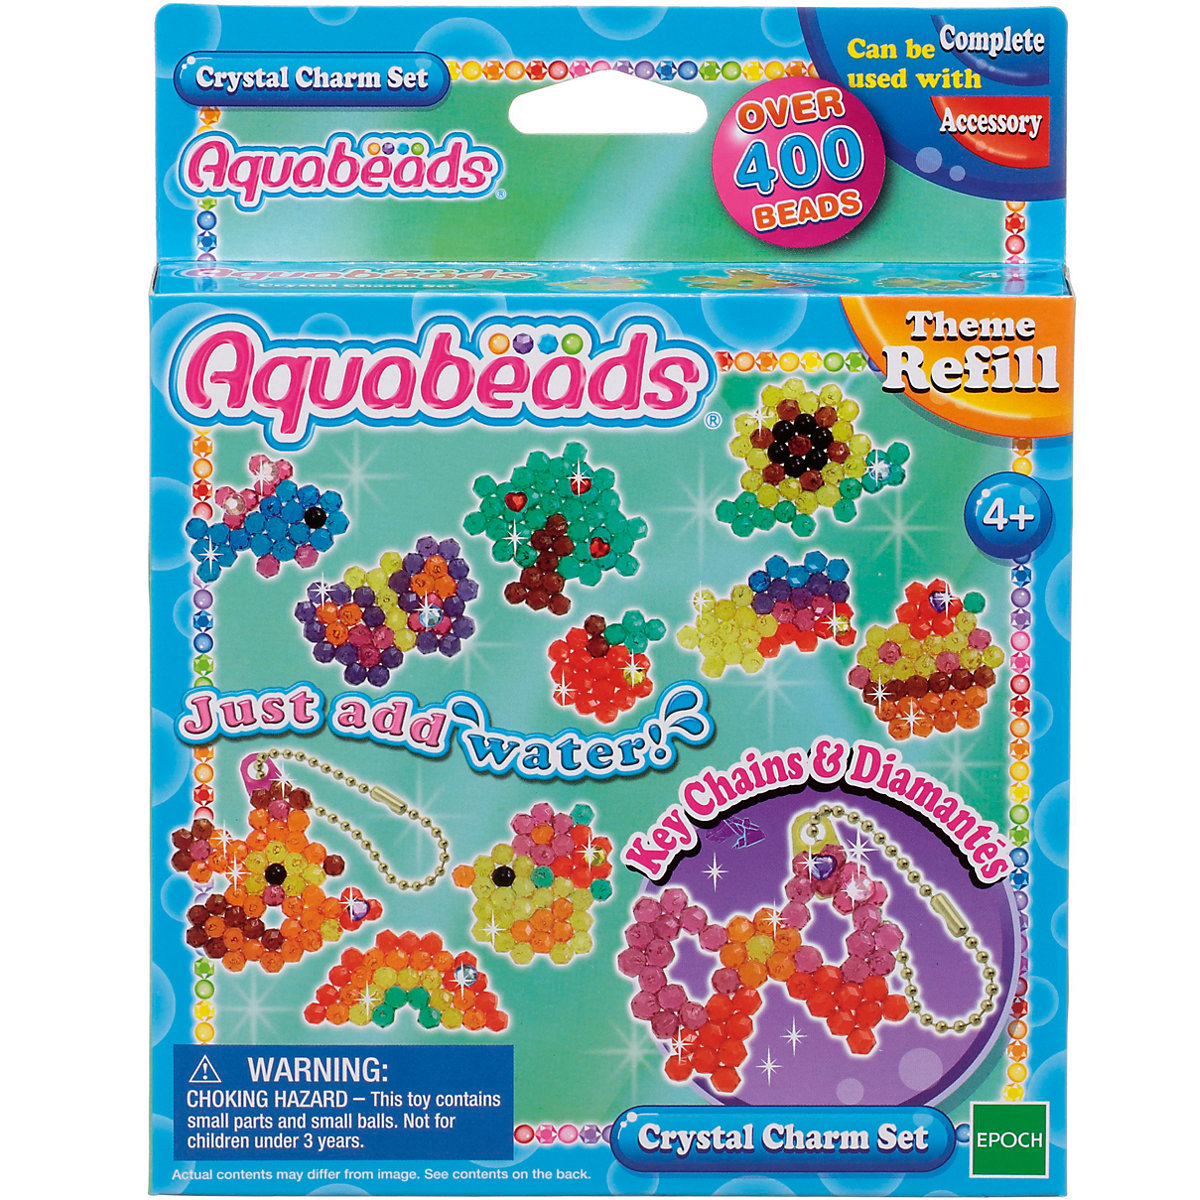 Aquabeads Beads Toys 7240123 Creativity Needlework For Children Set Kids Toy Hobbis Arts Crafts DIY